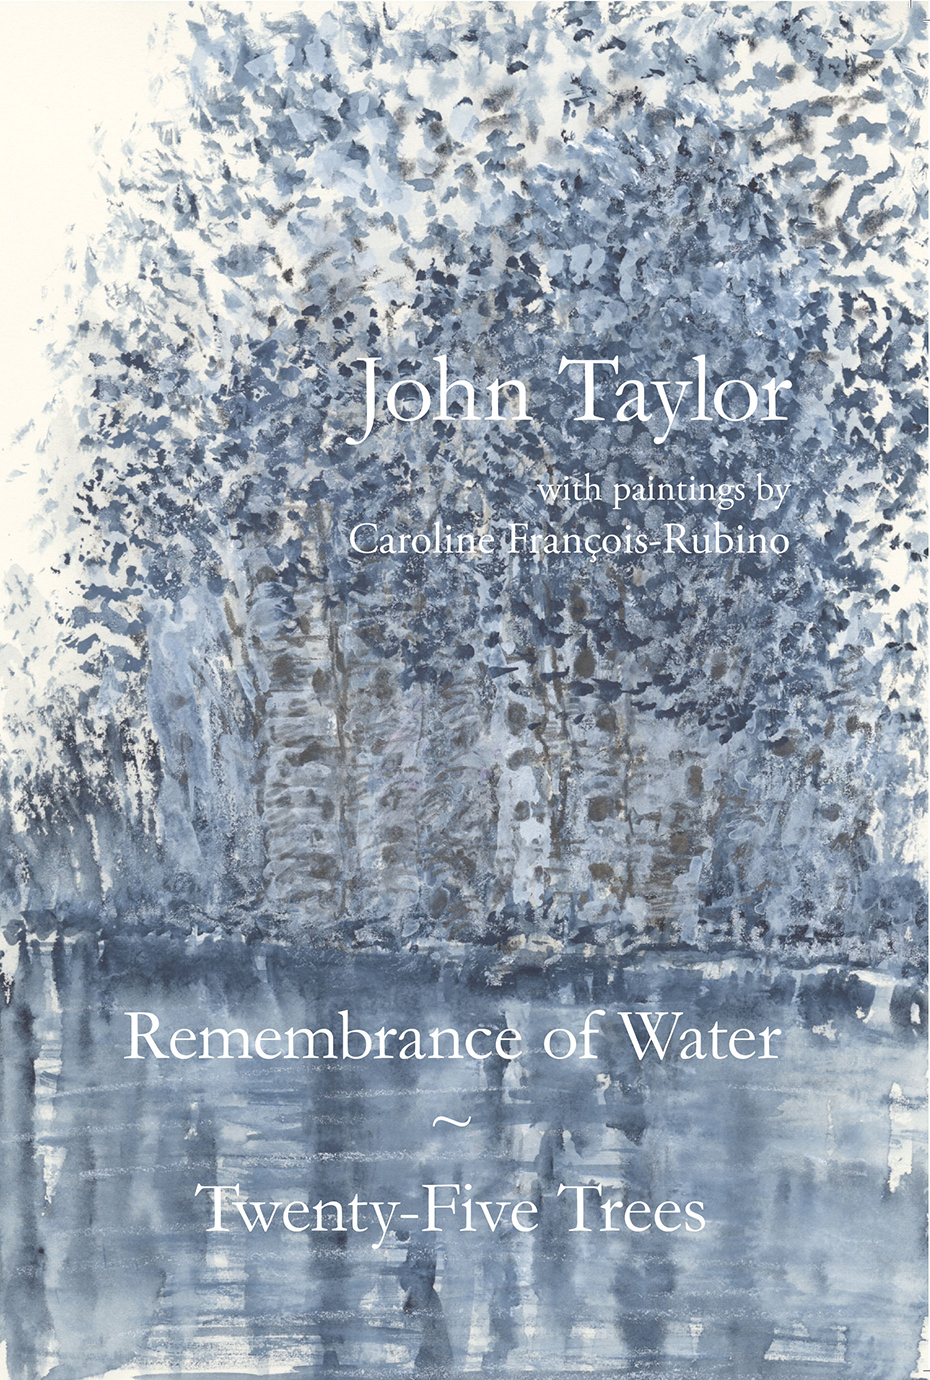 Remembrance of Water / Twenty-Five Trees